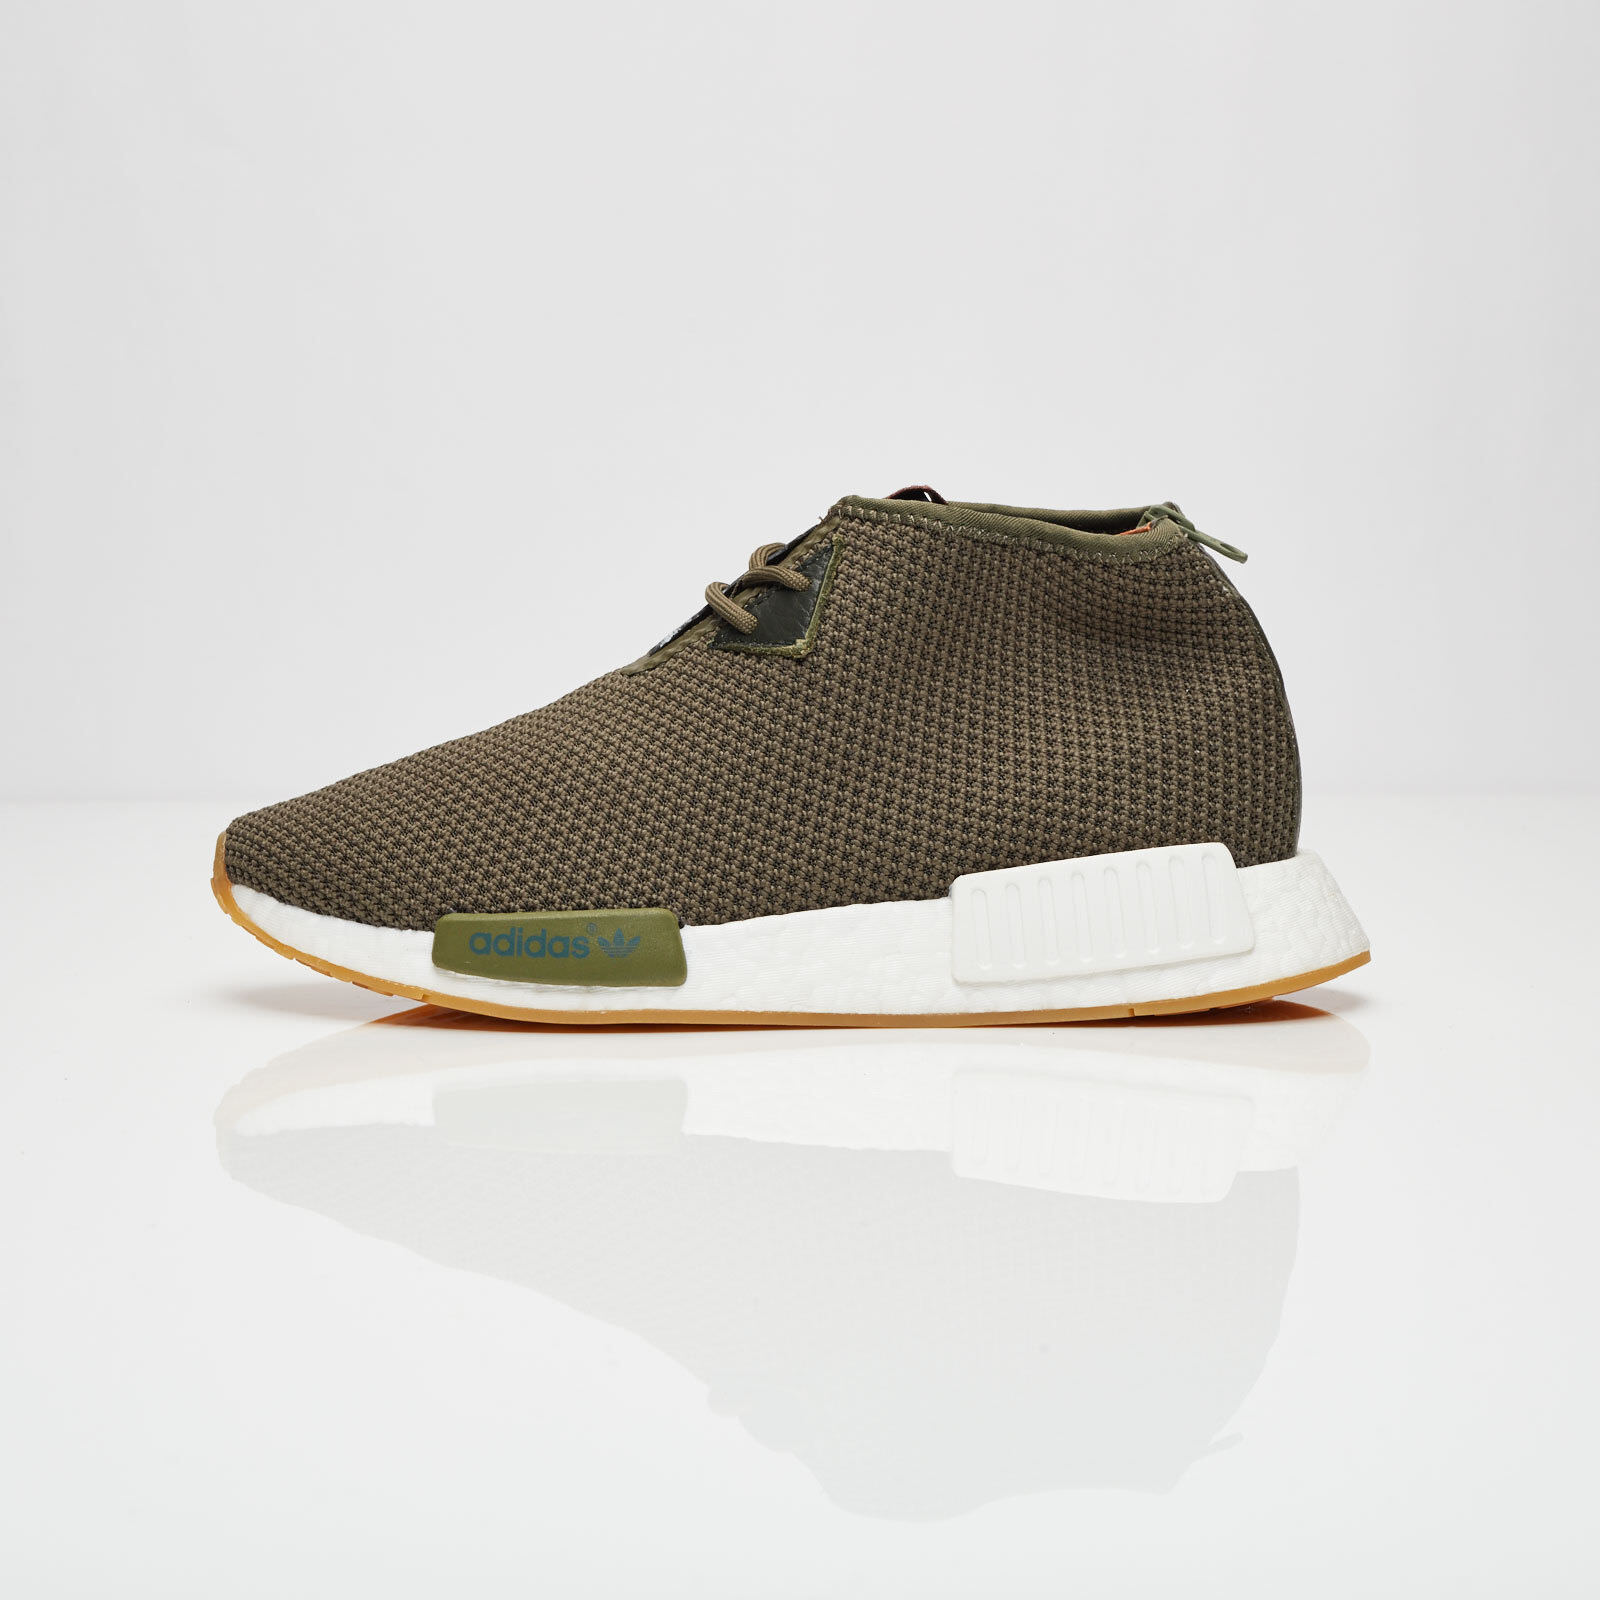 Adidas Consortium x END size Clothing NMD C2 Chukka size END 12. Cactus Olive .BB5993. 5c7582